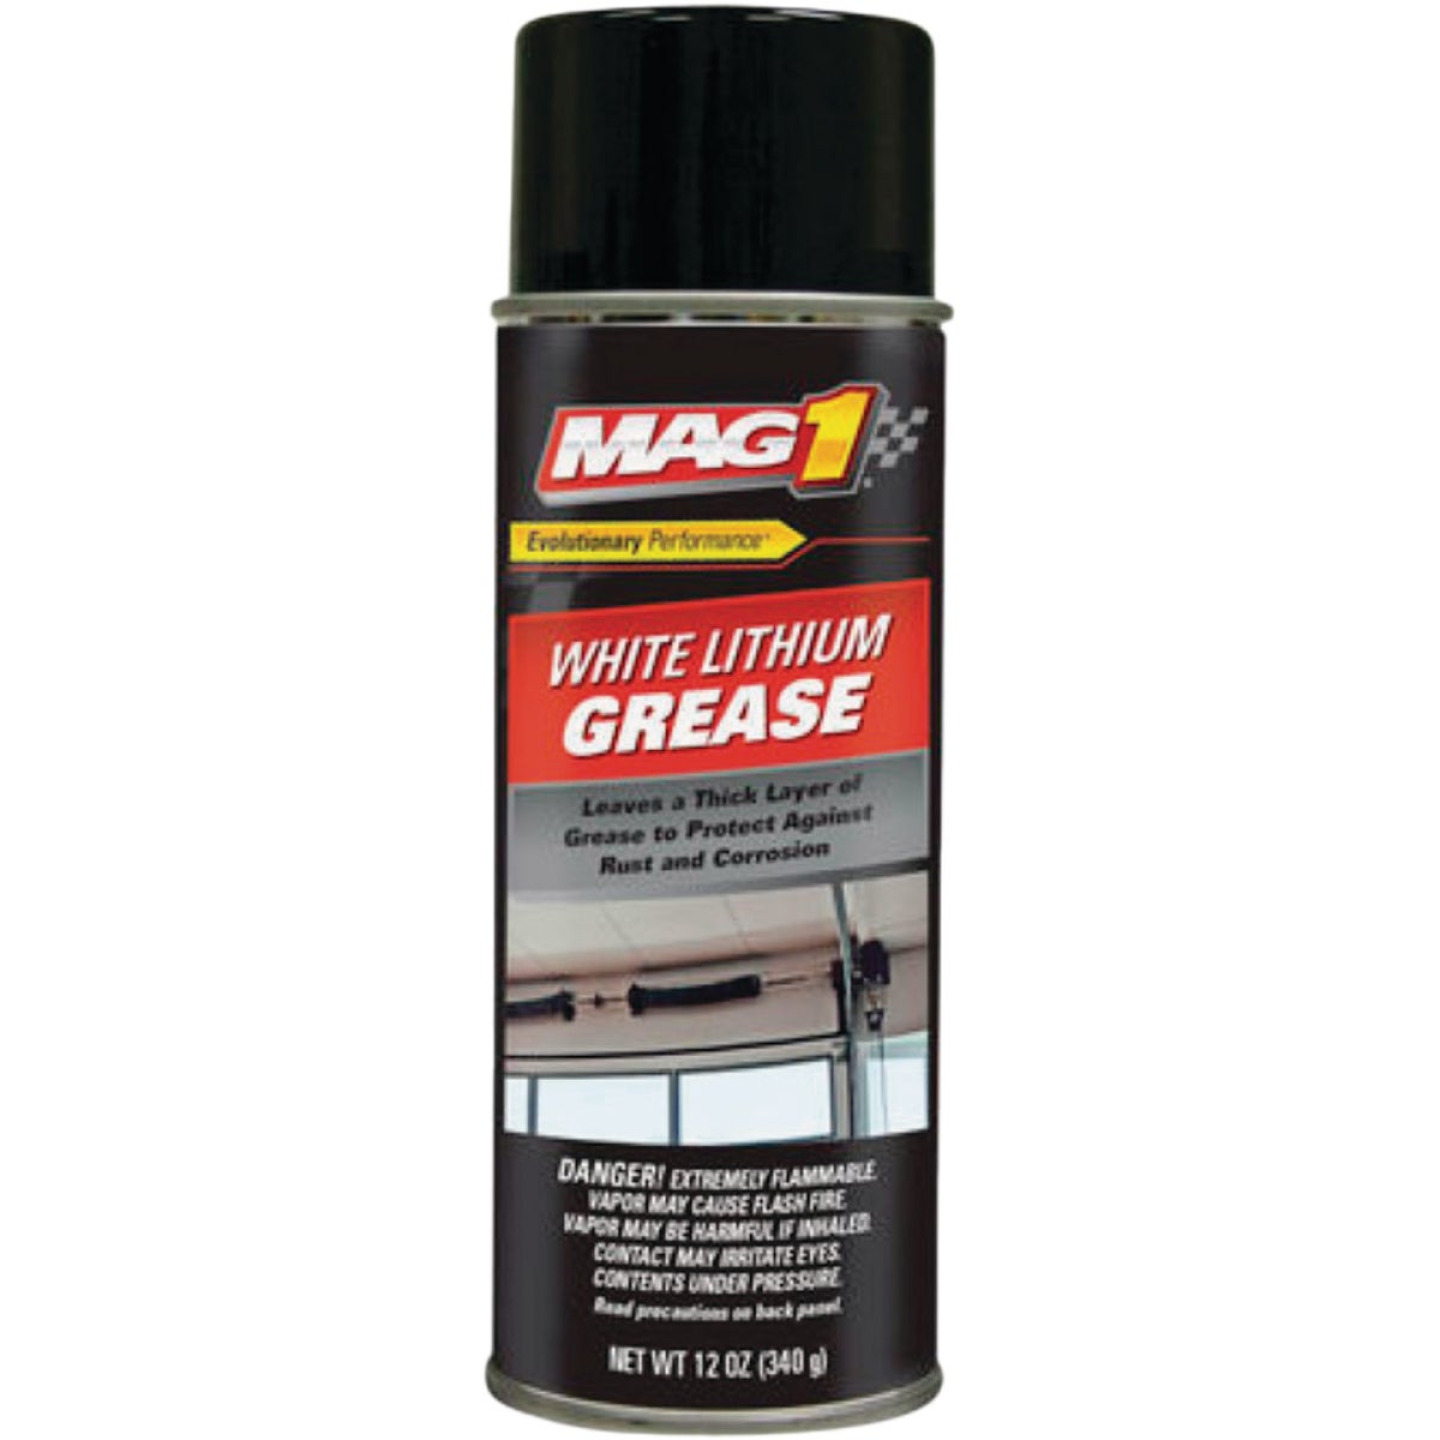 LubriMatic 12 Oz. Aerosol White Lithium Grease Image 1